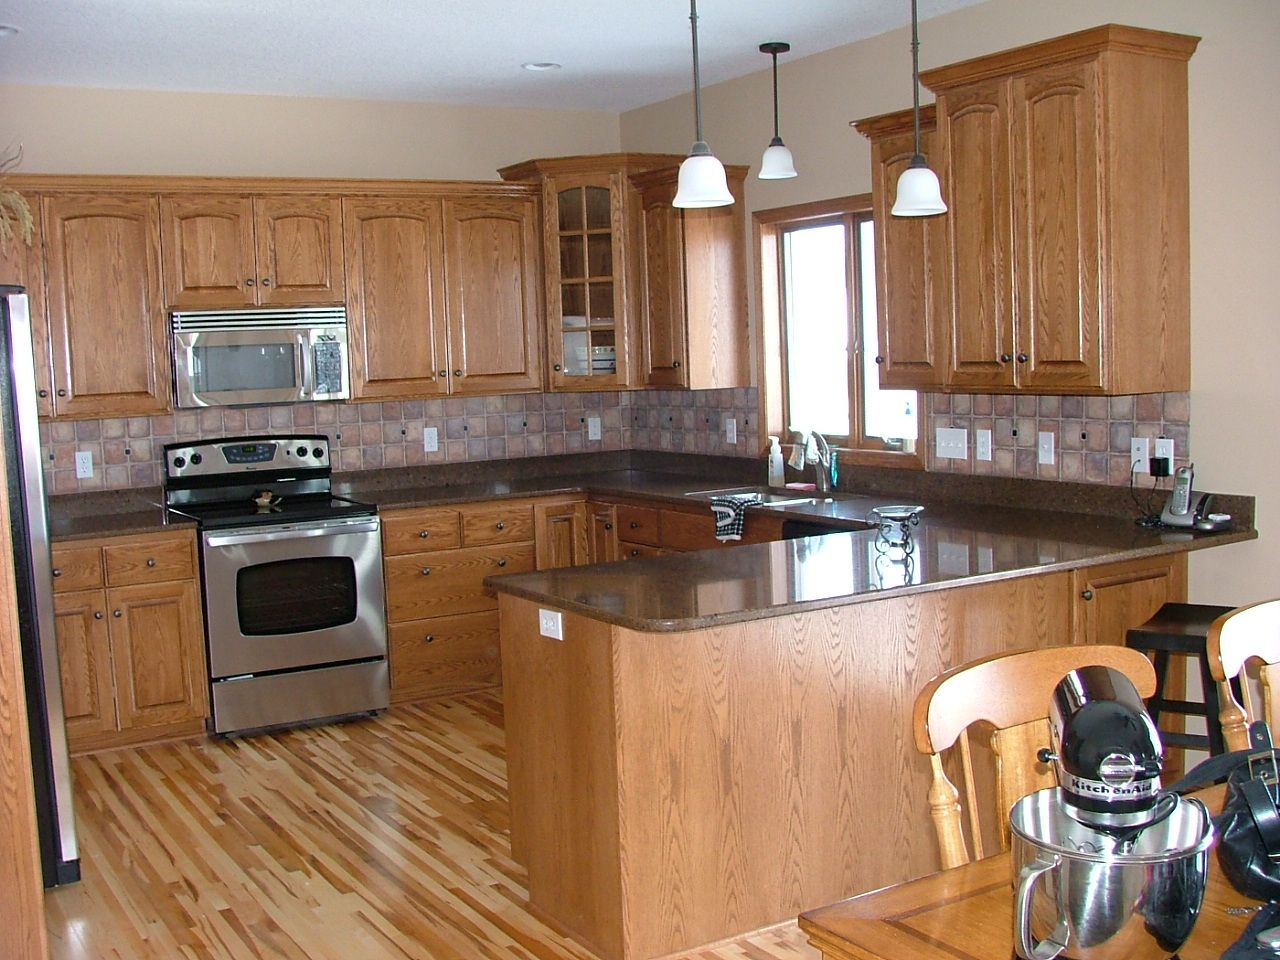 Backsplash Ideas For Light Oak Cabinets Part - 19: Kitchen, : Extraordinary U Shape Kitchen Decoration With Light Oak Wood  Kitchen Cabinet Including Black Granite Counter Tops And Light Brown Tile  Kitchen ...